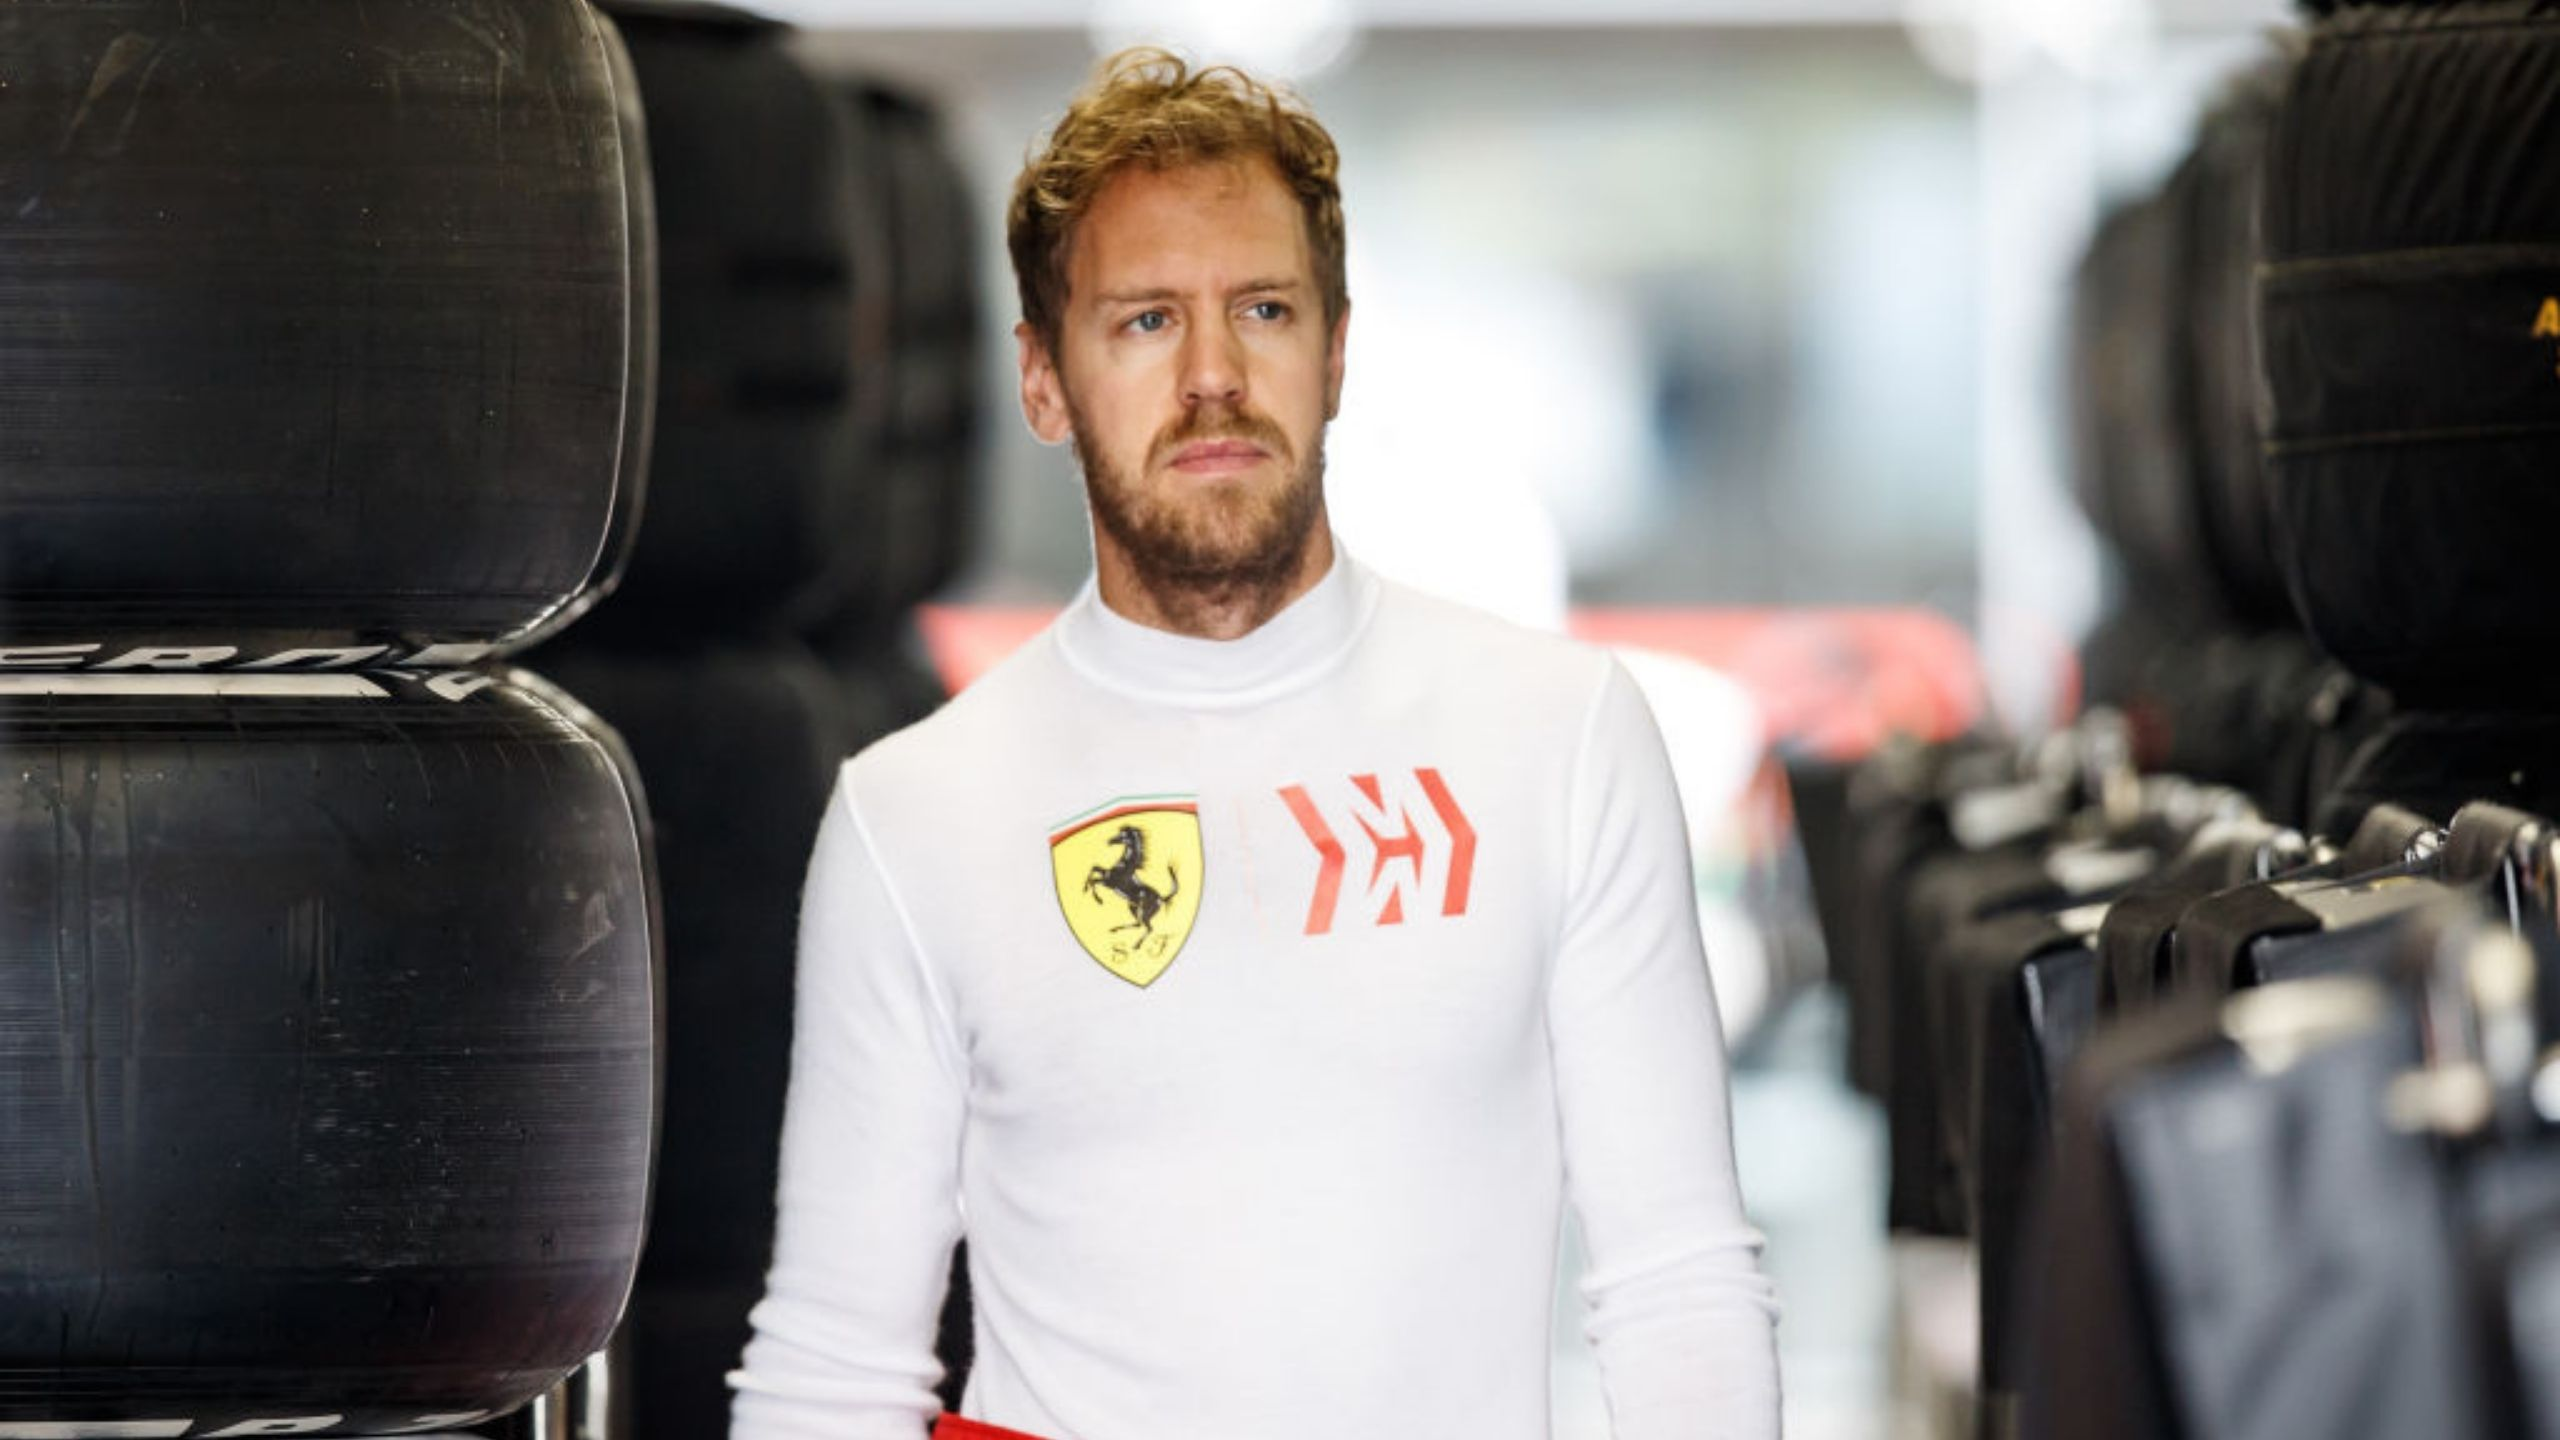 Synthetic fuels F1: Sebastian Vettel gives his show of approval for the use of synthetic fuels in F1